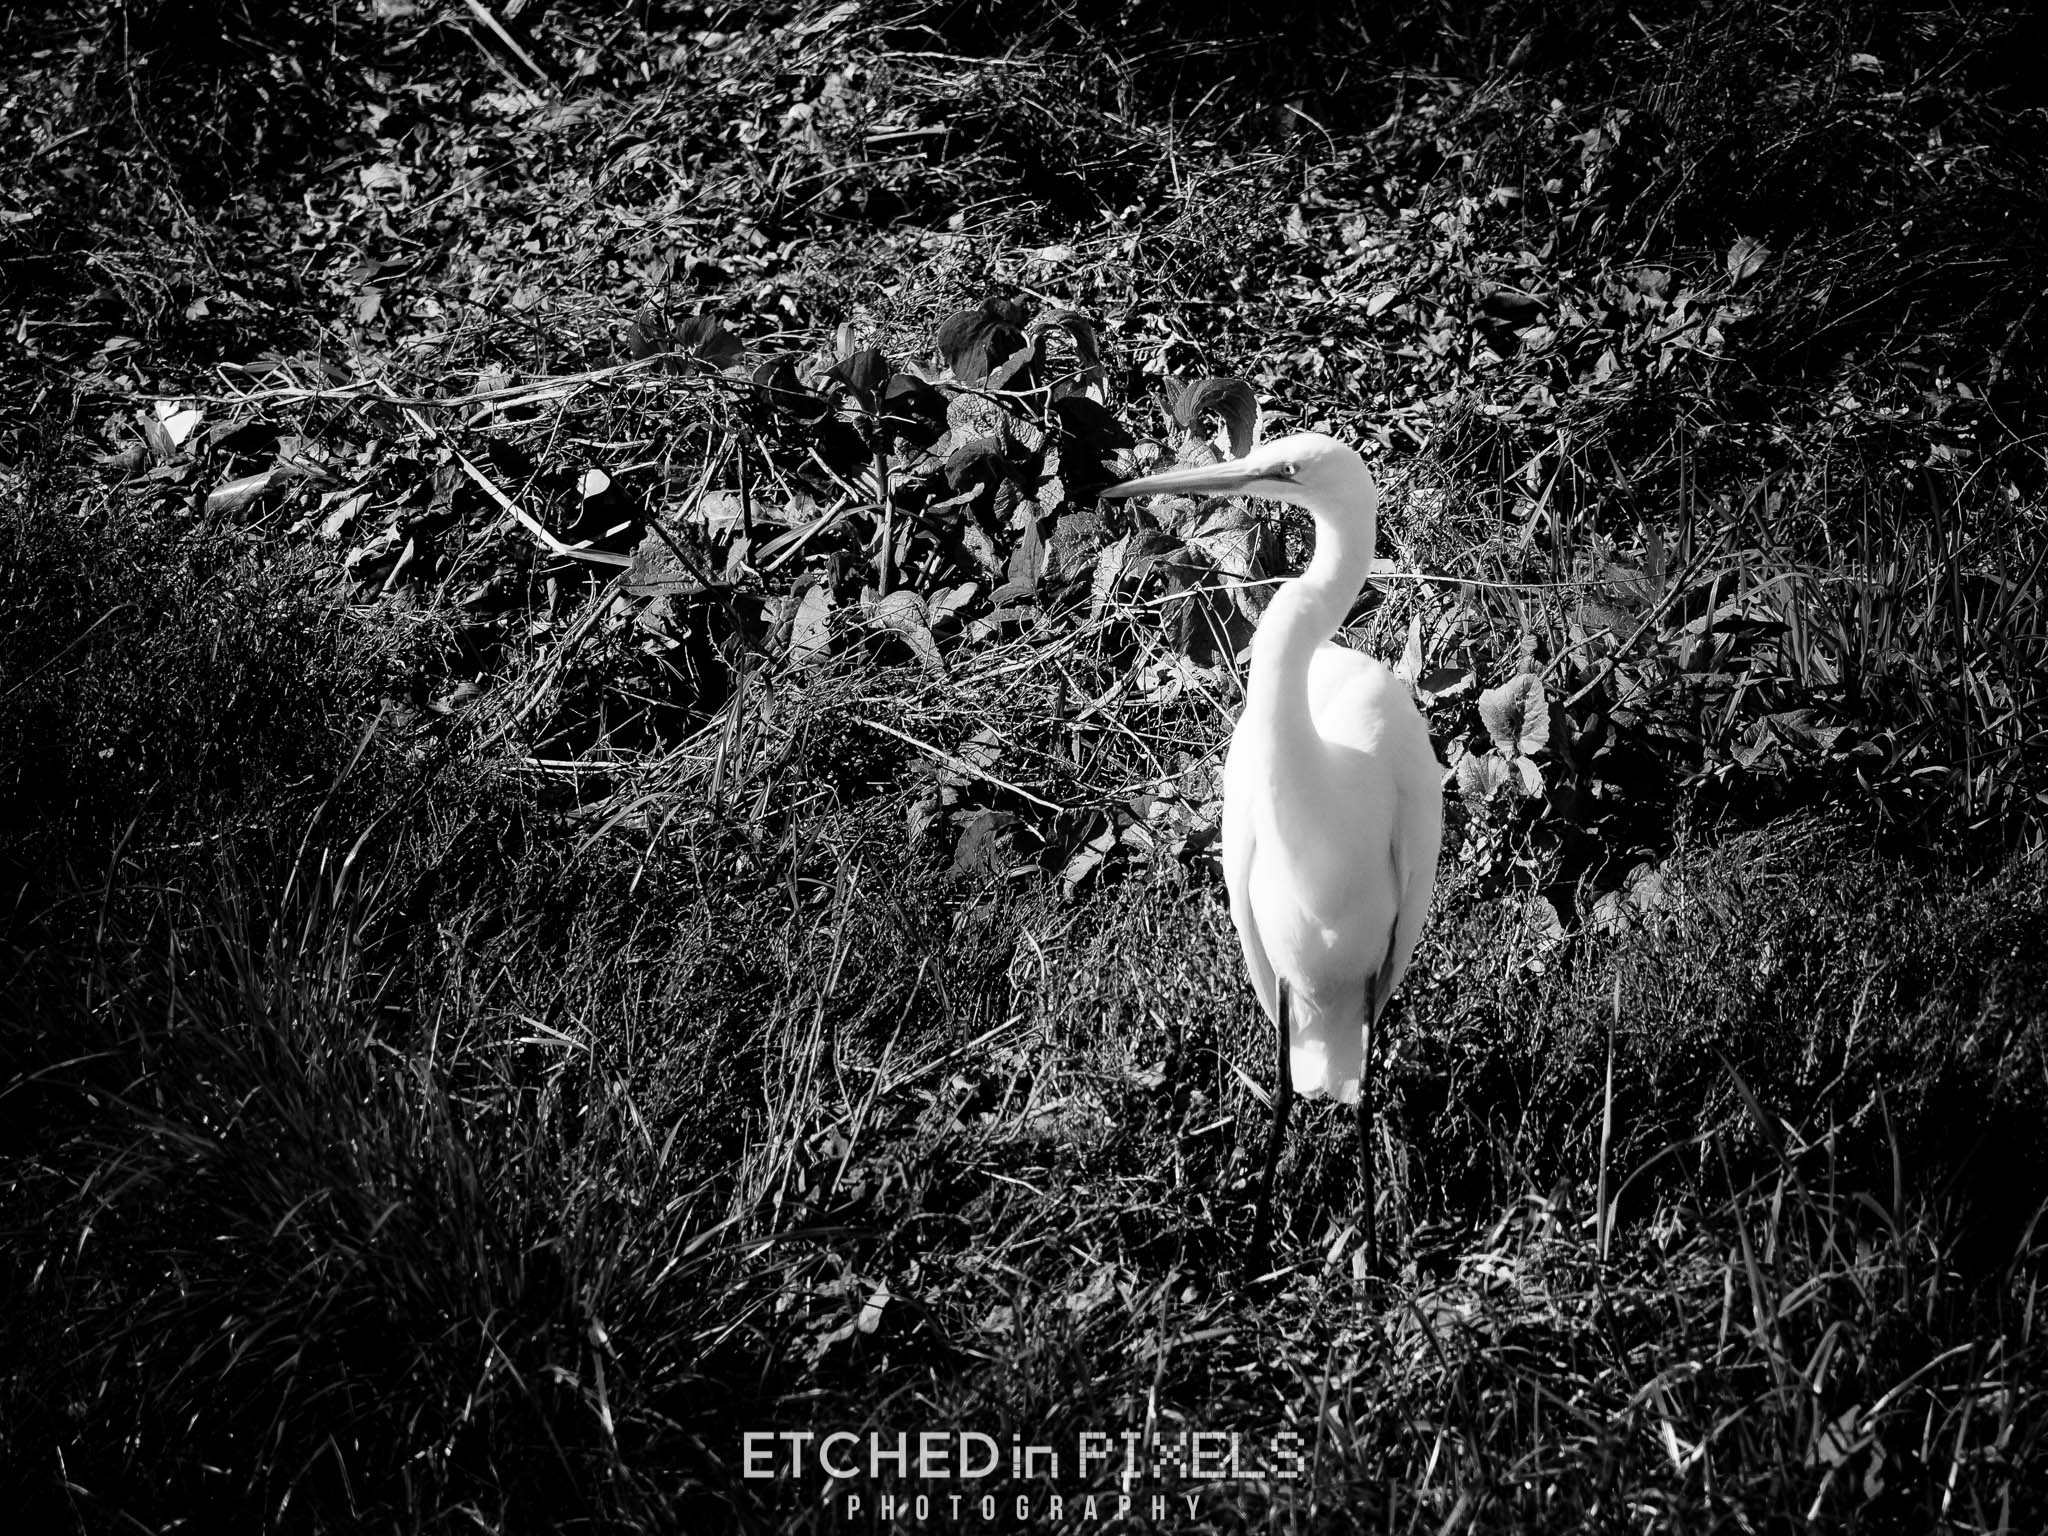 The estuary is home to many Snowy White Egrets. As we were leaving, this massive bird came to land just a short distance away.